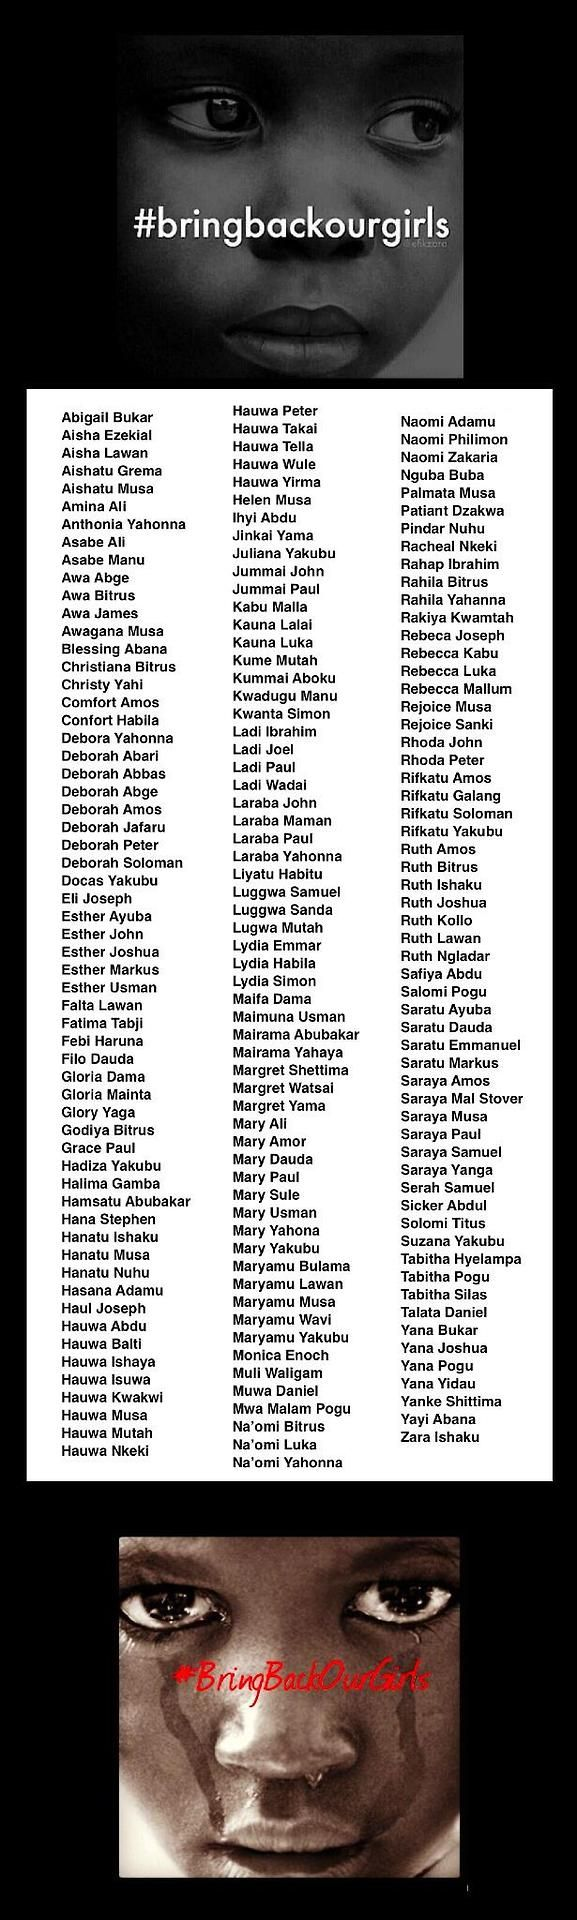 These are the names of the 180 still-missing Nigerian girls